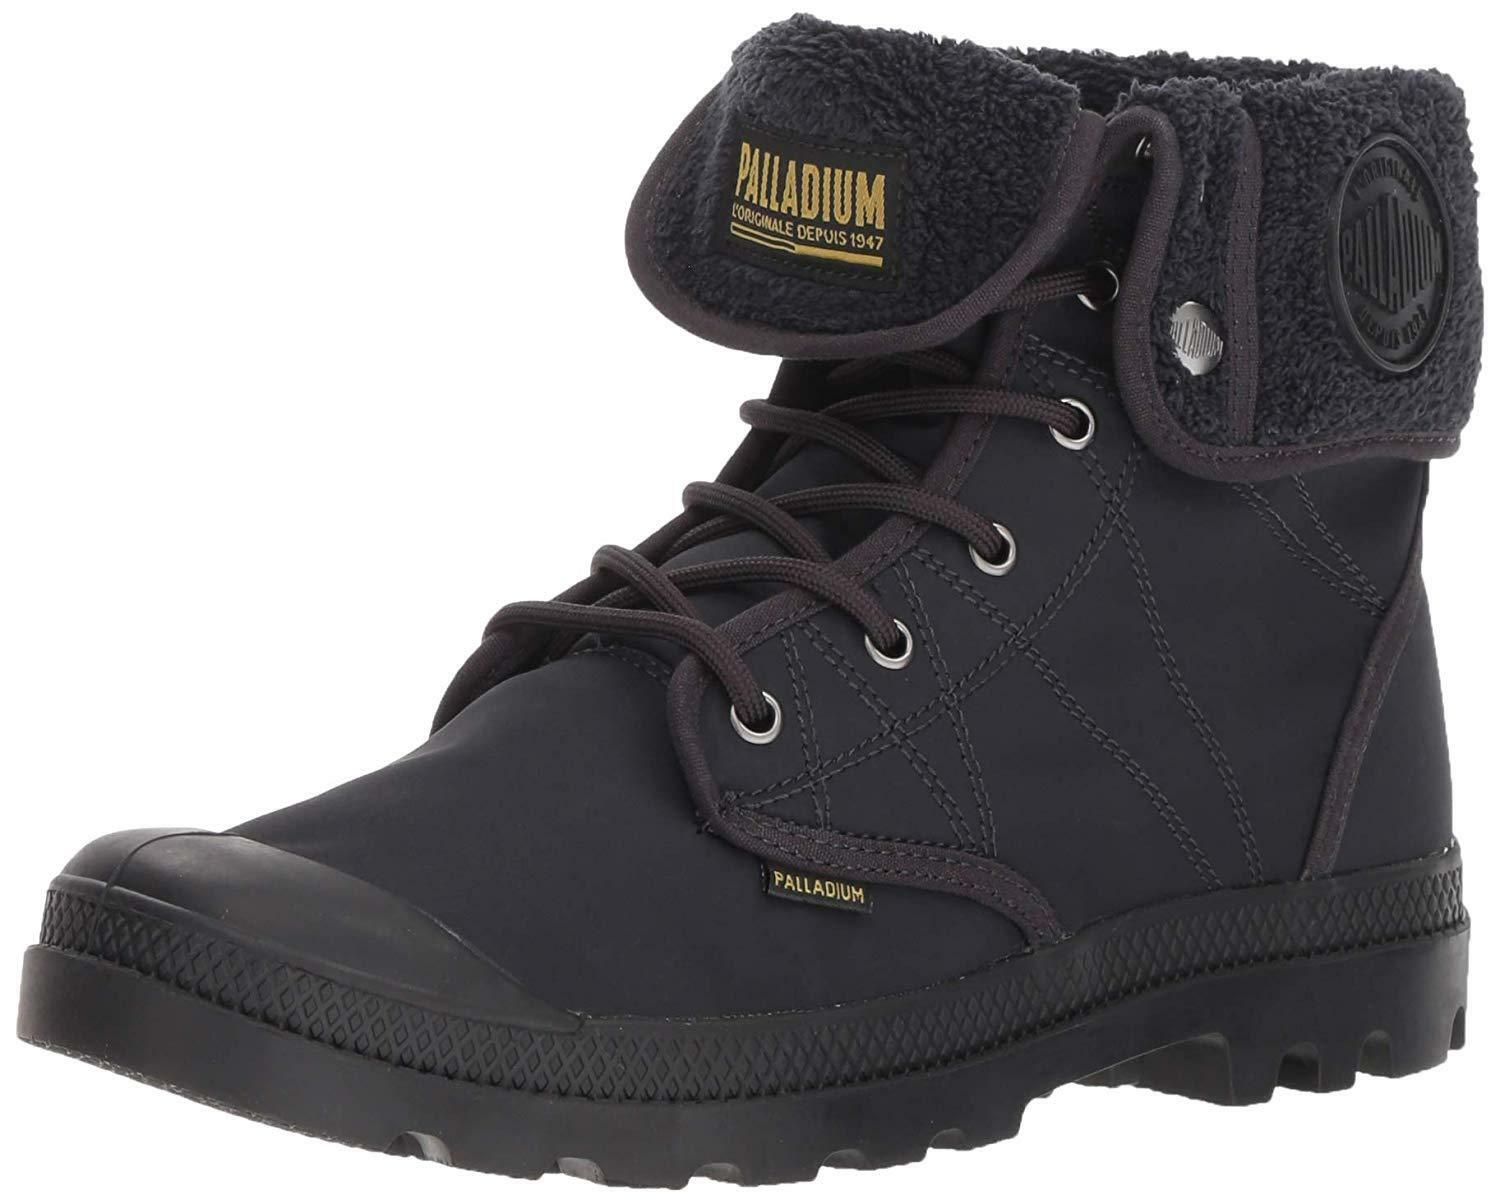 Men's Palladium Boots Pallabrousse Baggy TX Nylon Anthracite   Black 75978-003-M